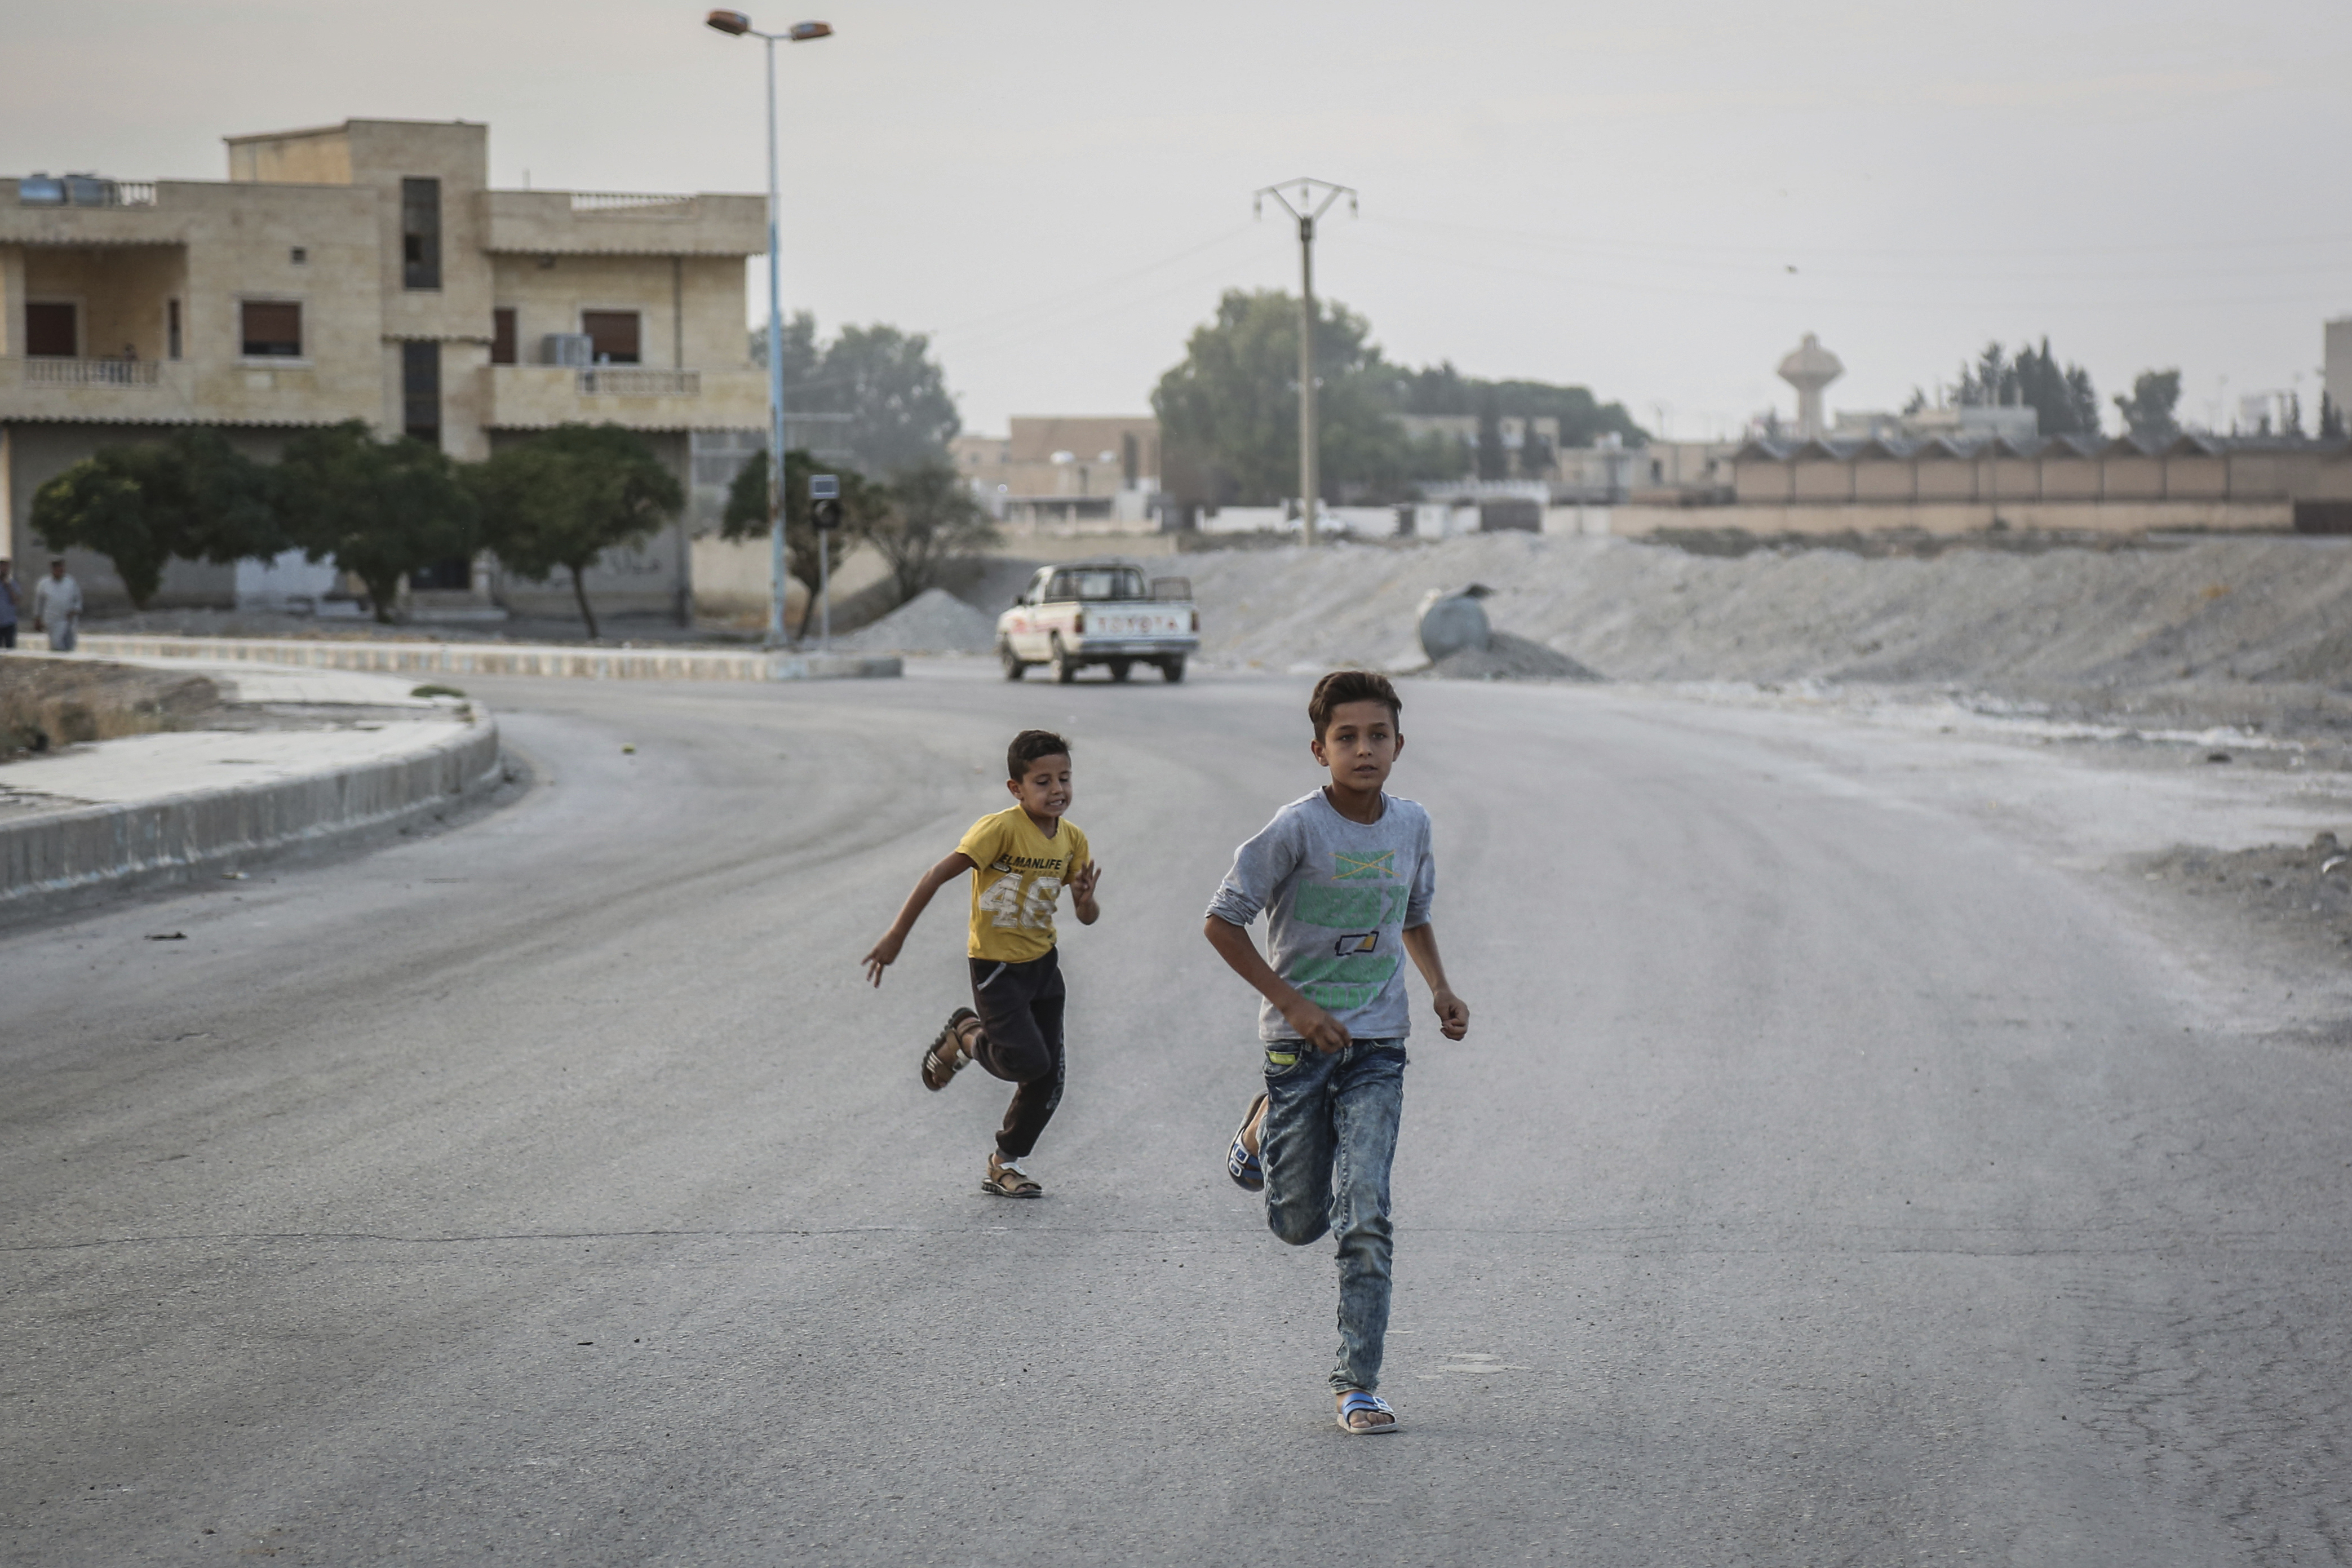 14 October 2019, Syria, Tell Abiad: Two young boys run on a deserted street. Photo by: Anas Alkharboutli/picture-alliance/dpa/AP Images